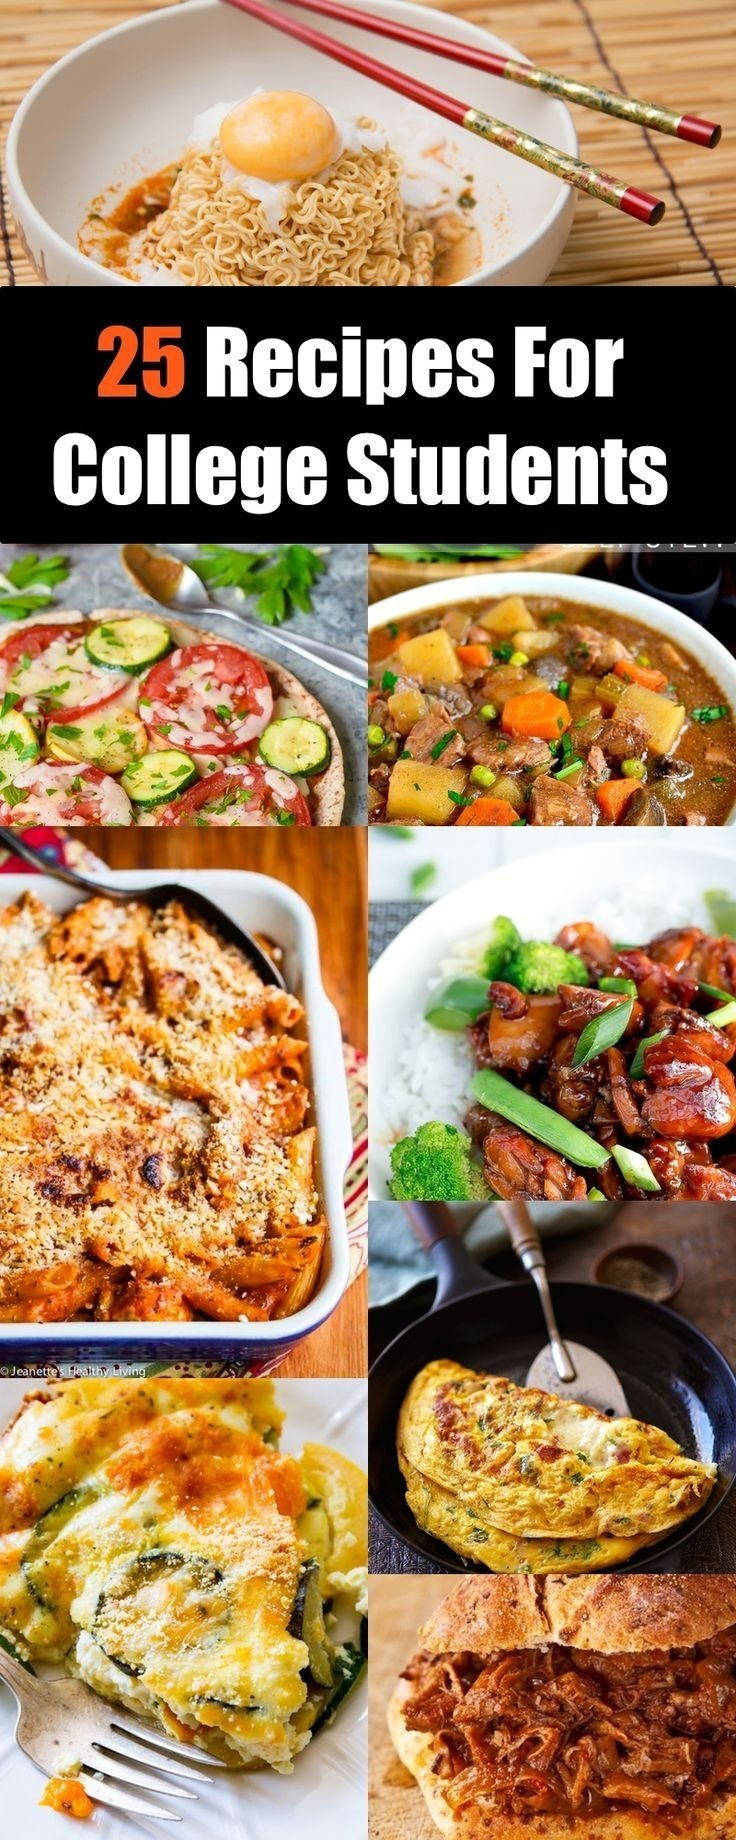 10 Fabulous Dinner Ideas On A Budget 25 recipes for college students that wont break your budget 4 2021